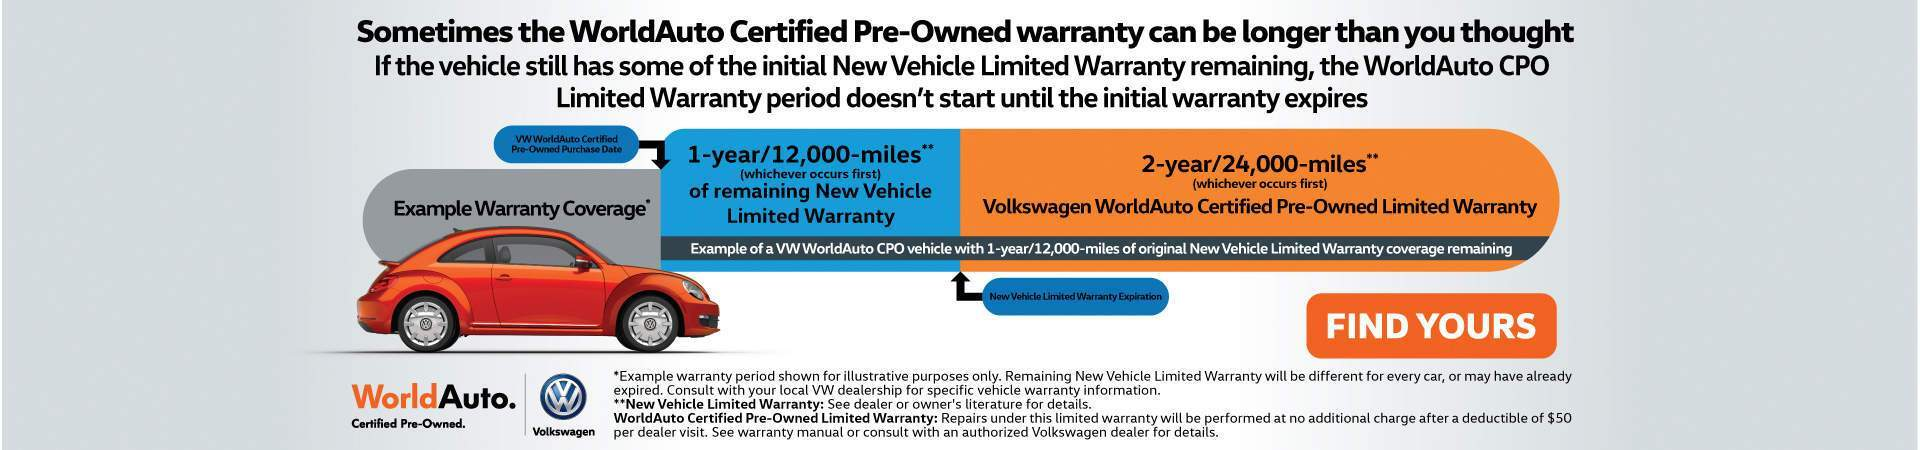 Certified Pre-Owned Warranty